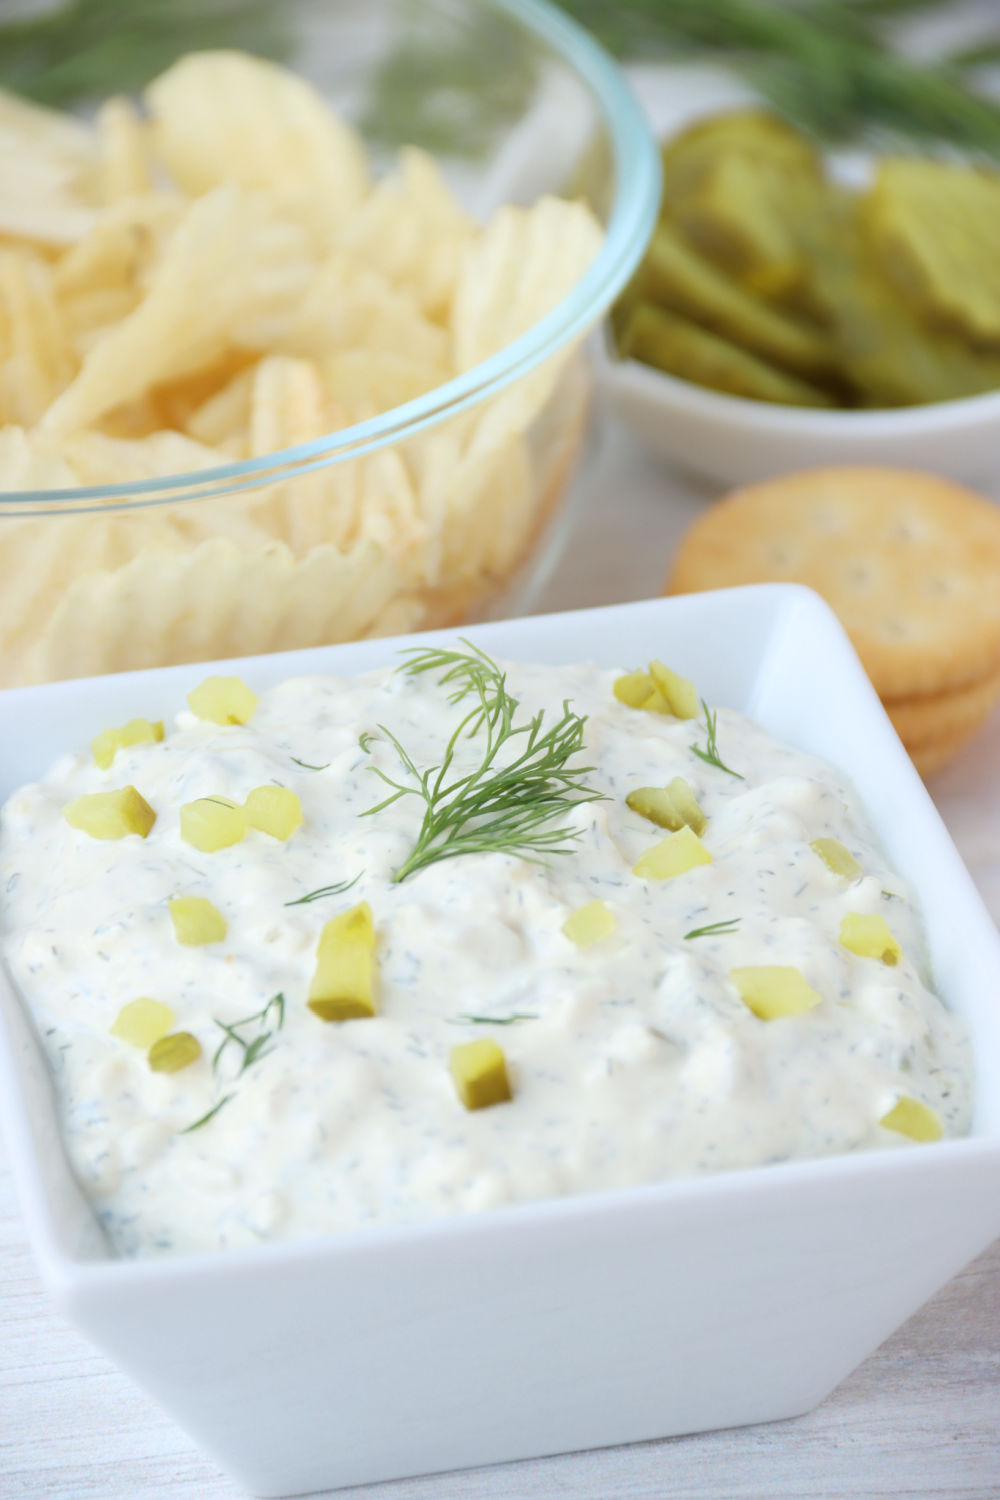 dill pickle dip with chips and crackers in the background